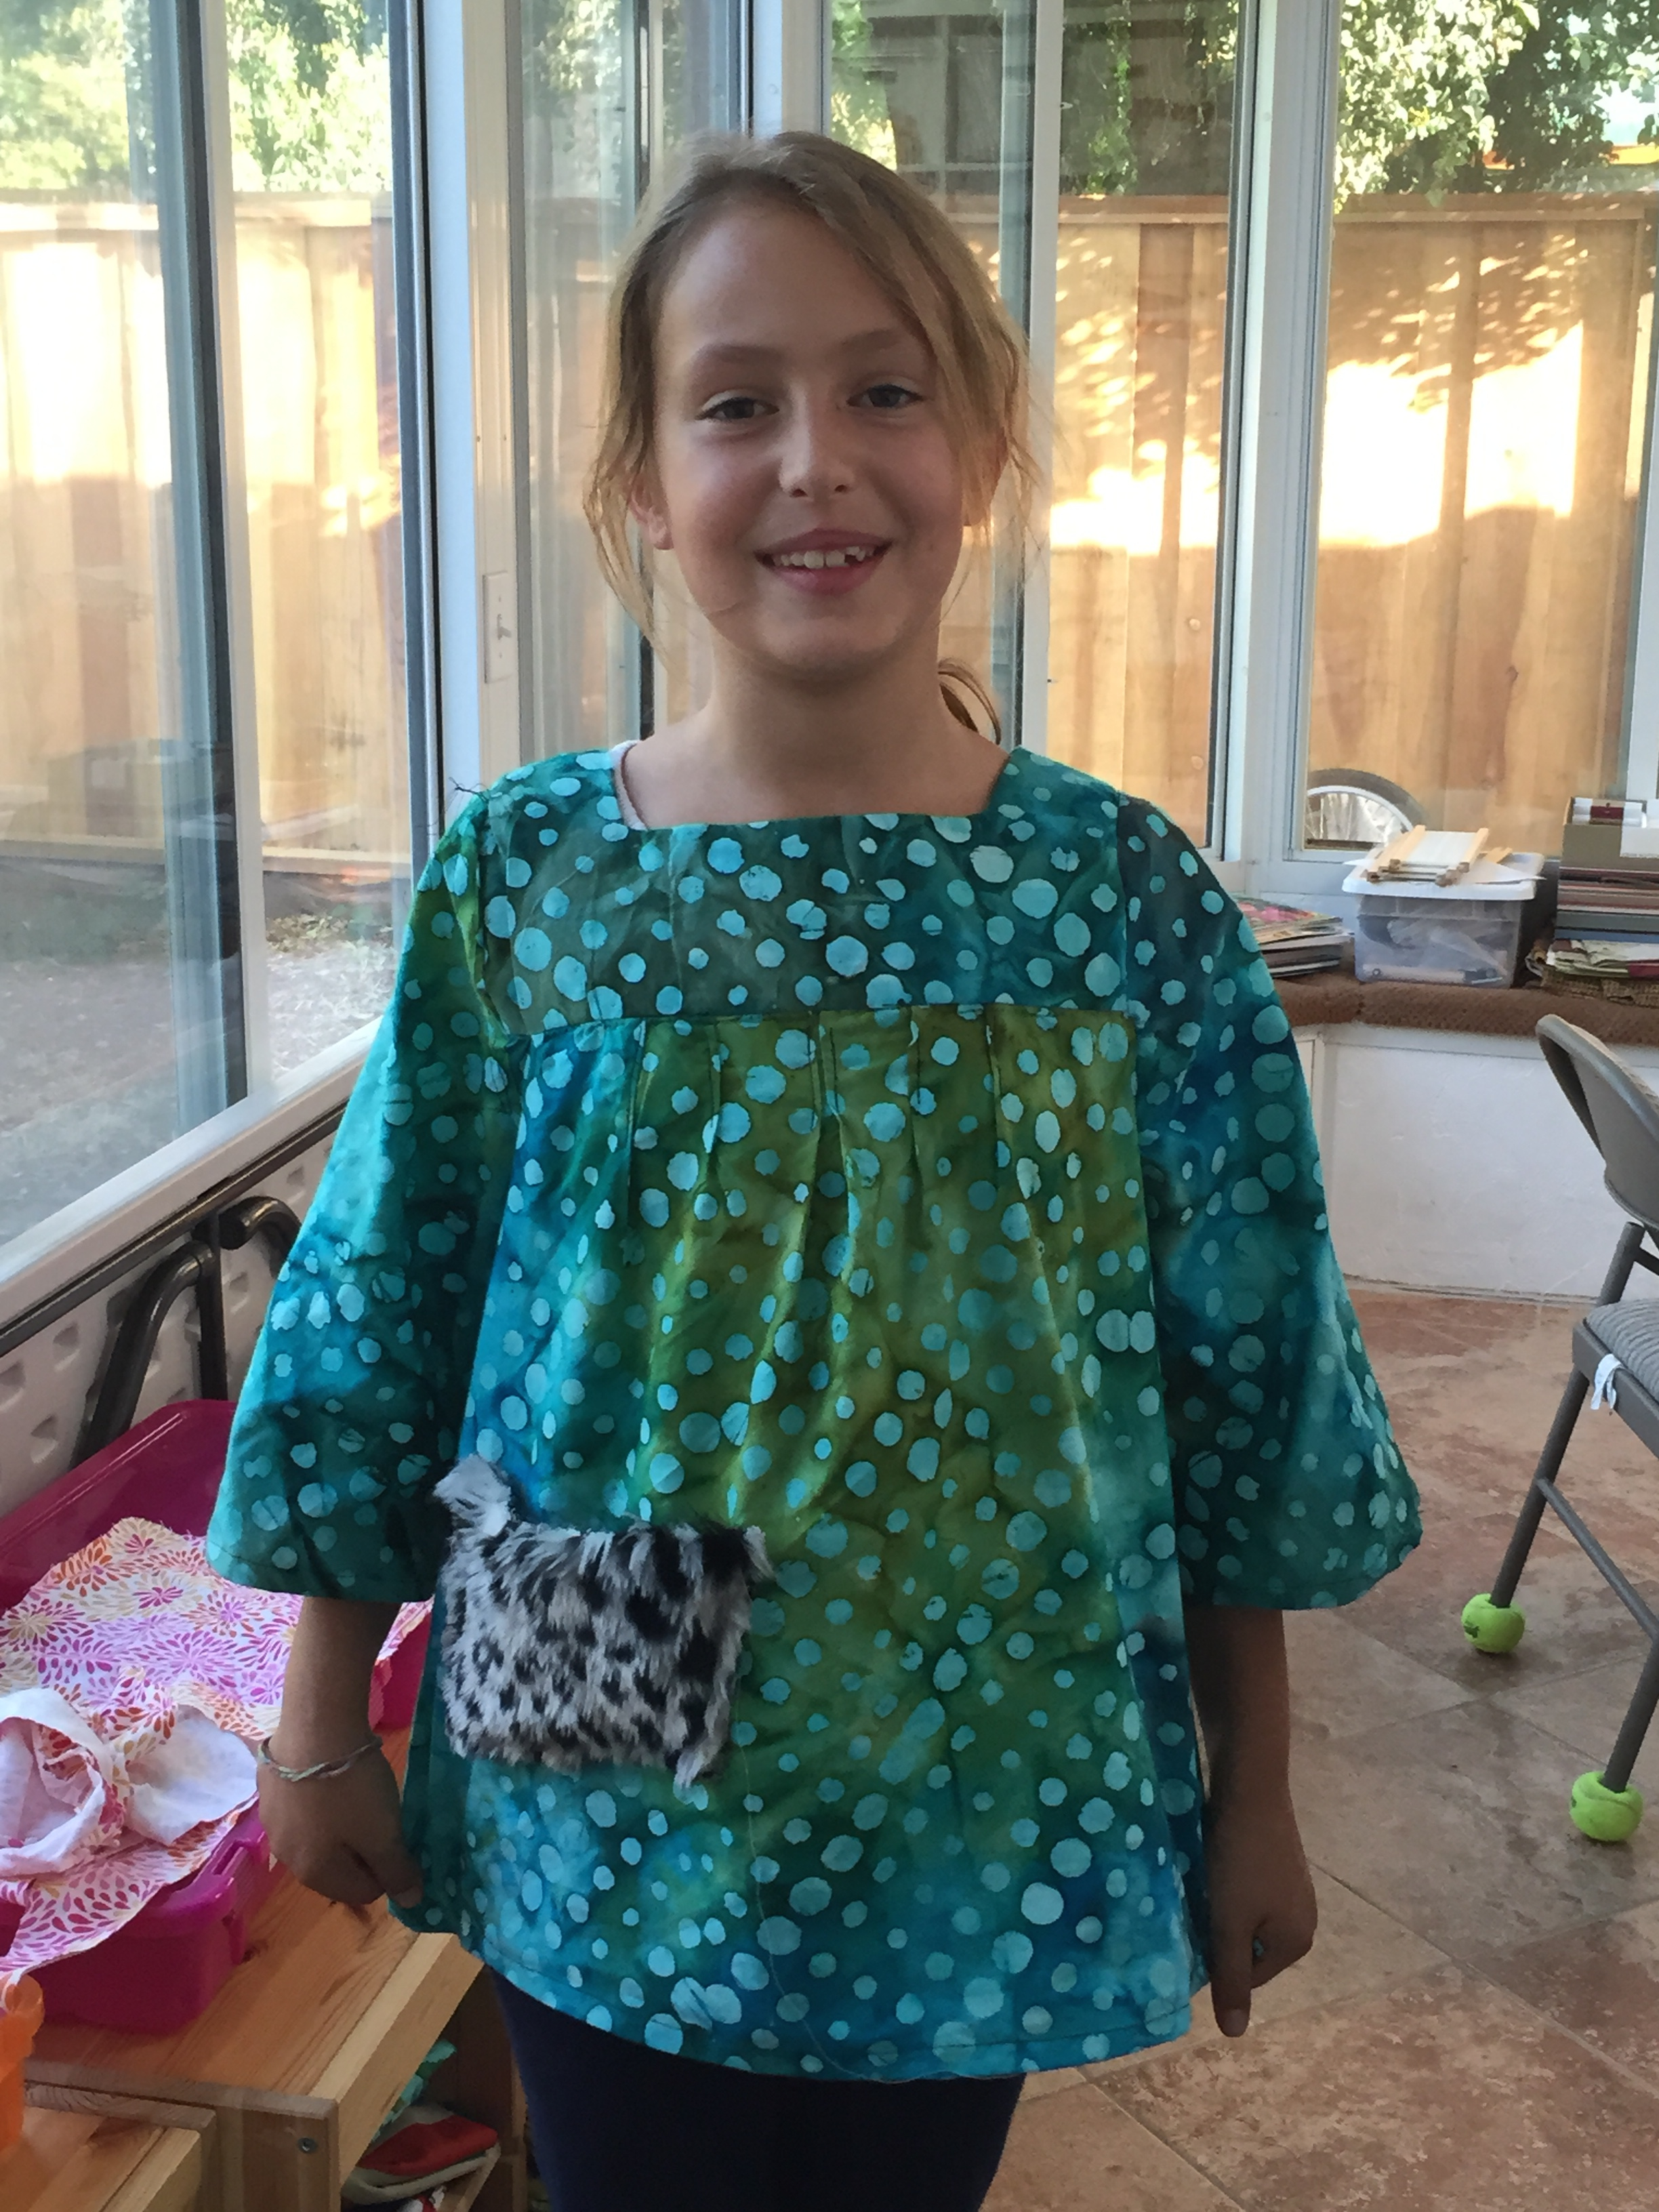 4th grader blouse.